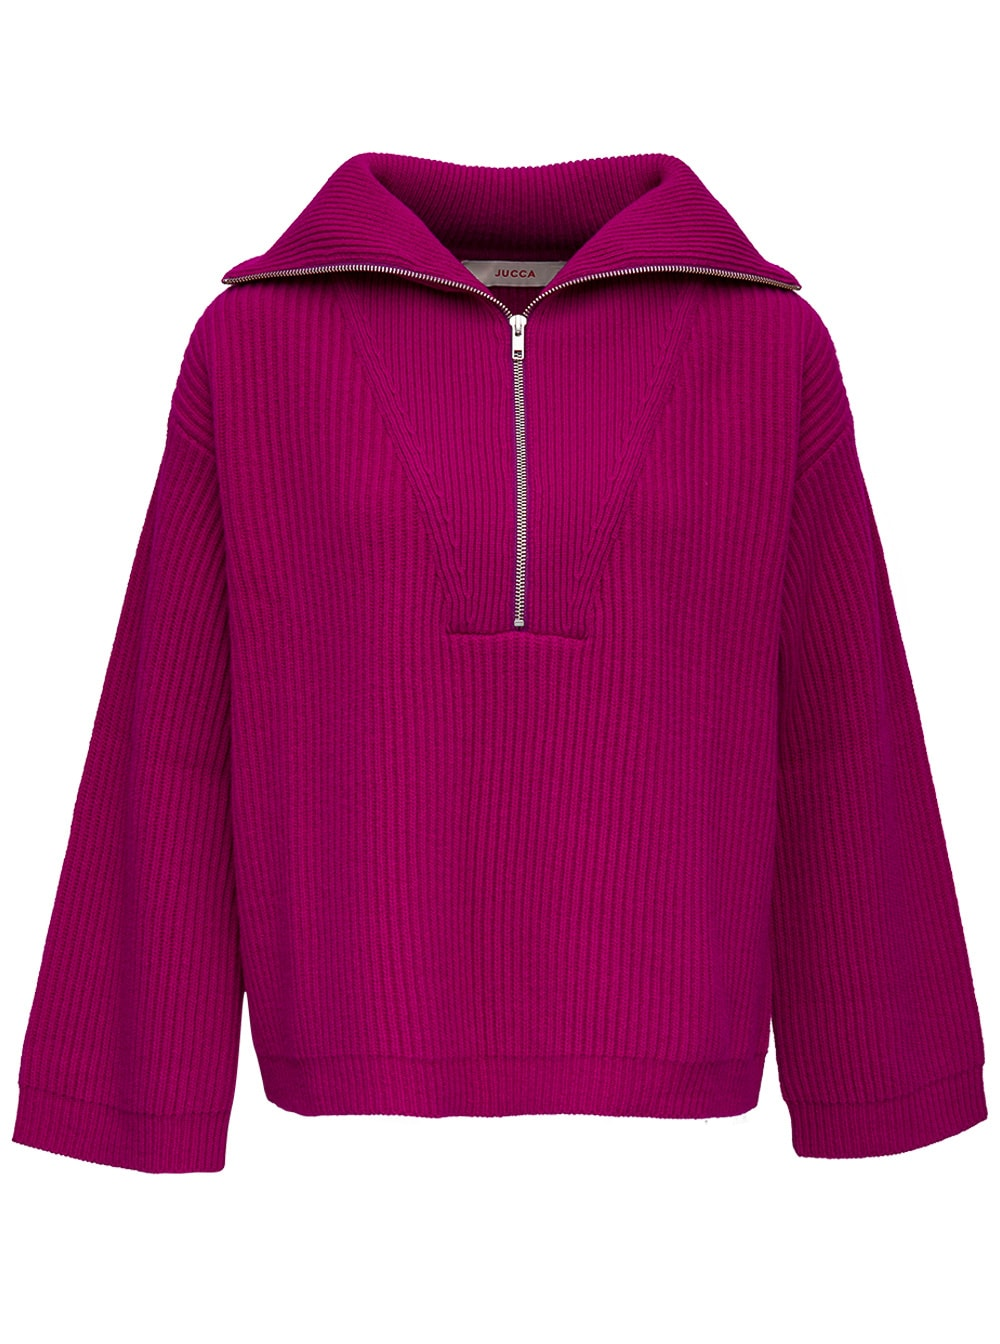 Pink Wool Sweater With Wide Neckline And Zip